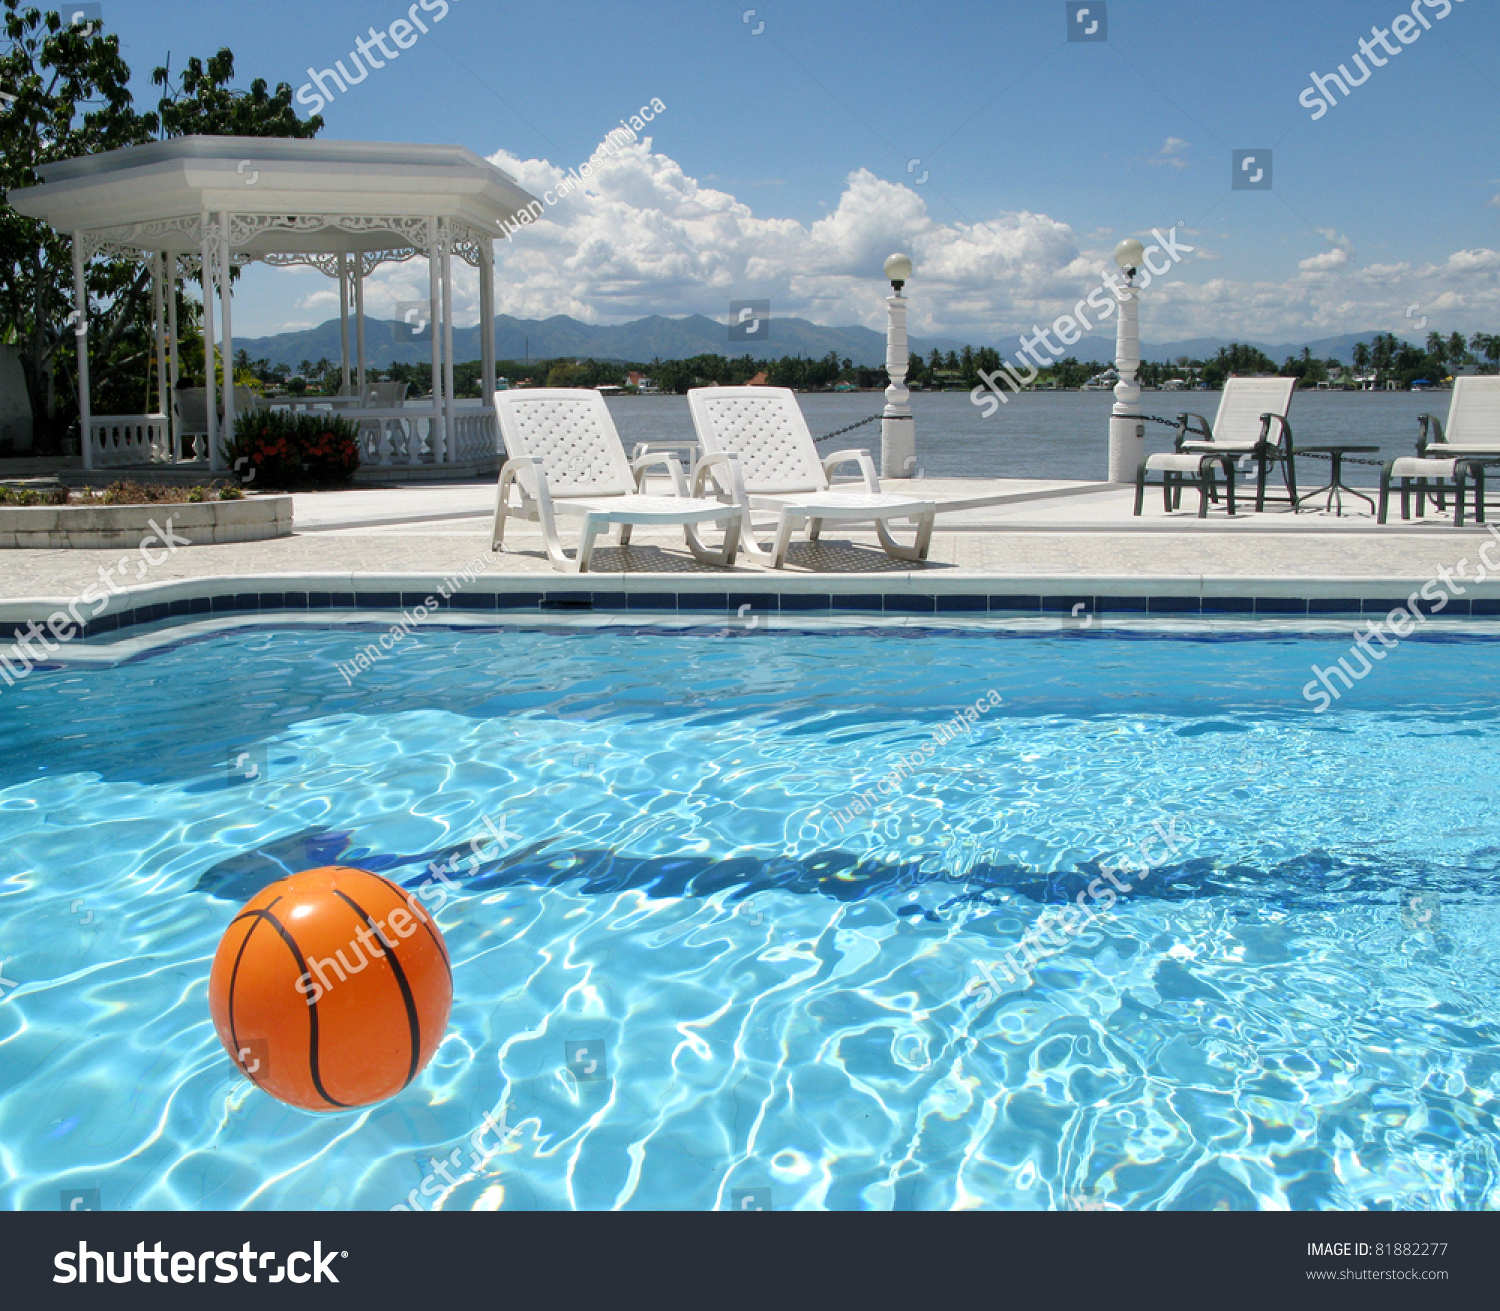 Angle View Swimming Pool On Hotel Stock Photo 81882277 Shutterstock